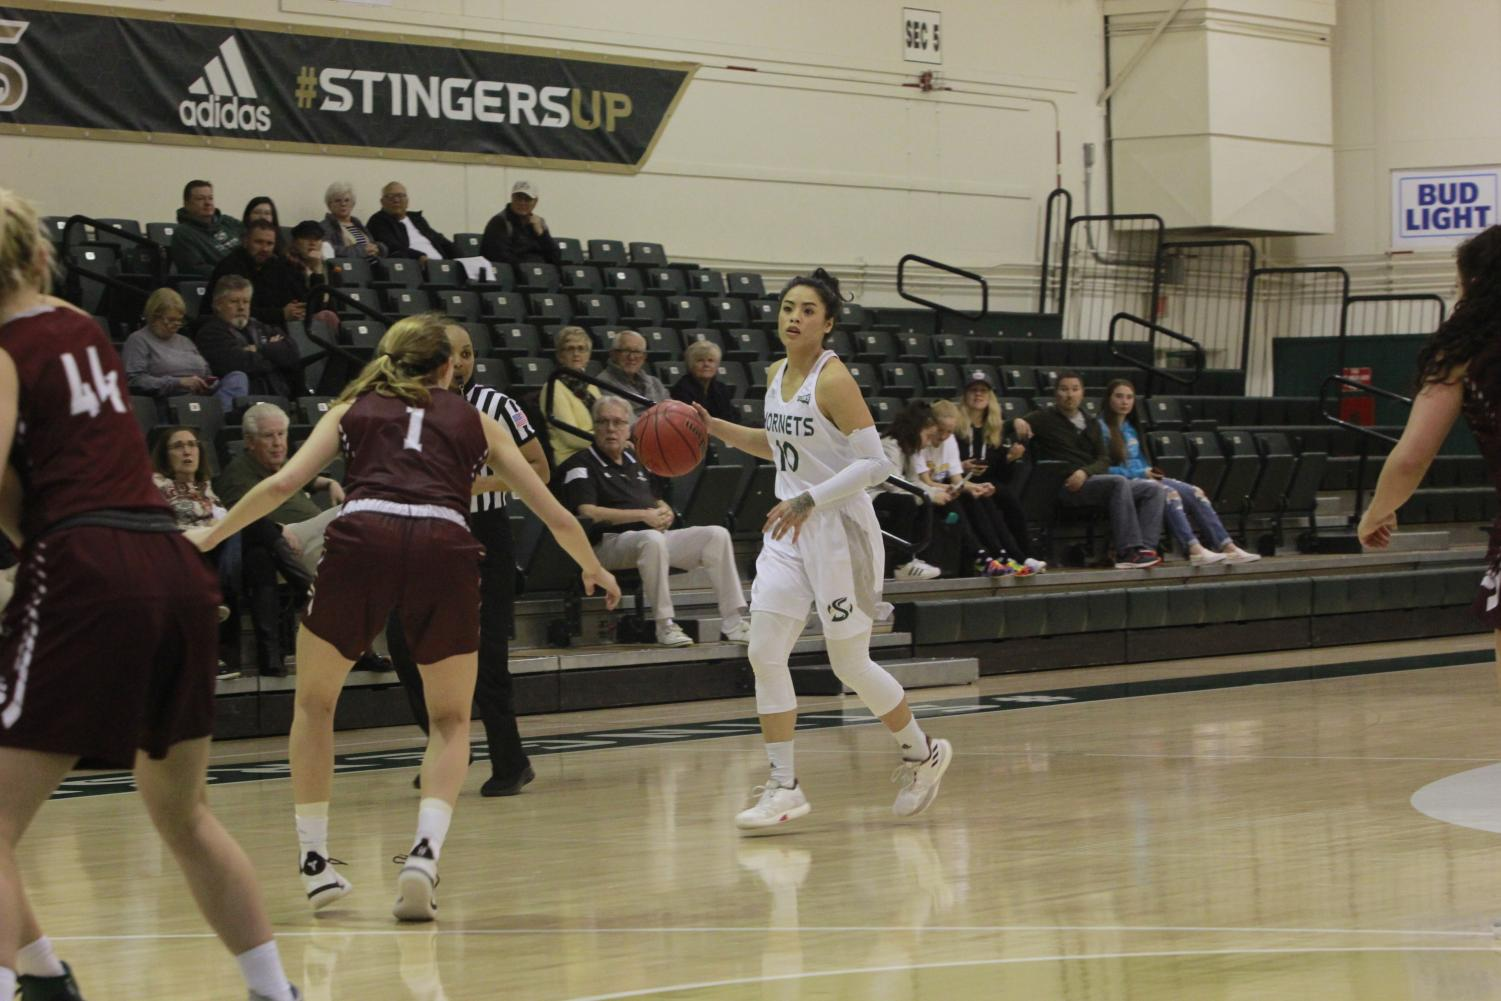 Sac State junior guard Gabi Bade waits for the play to develop in a 88-86 double-overtime loss to Montana at the Nest on Jan. 3.